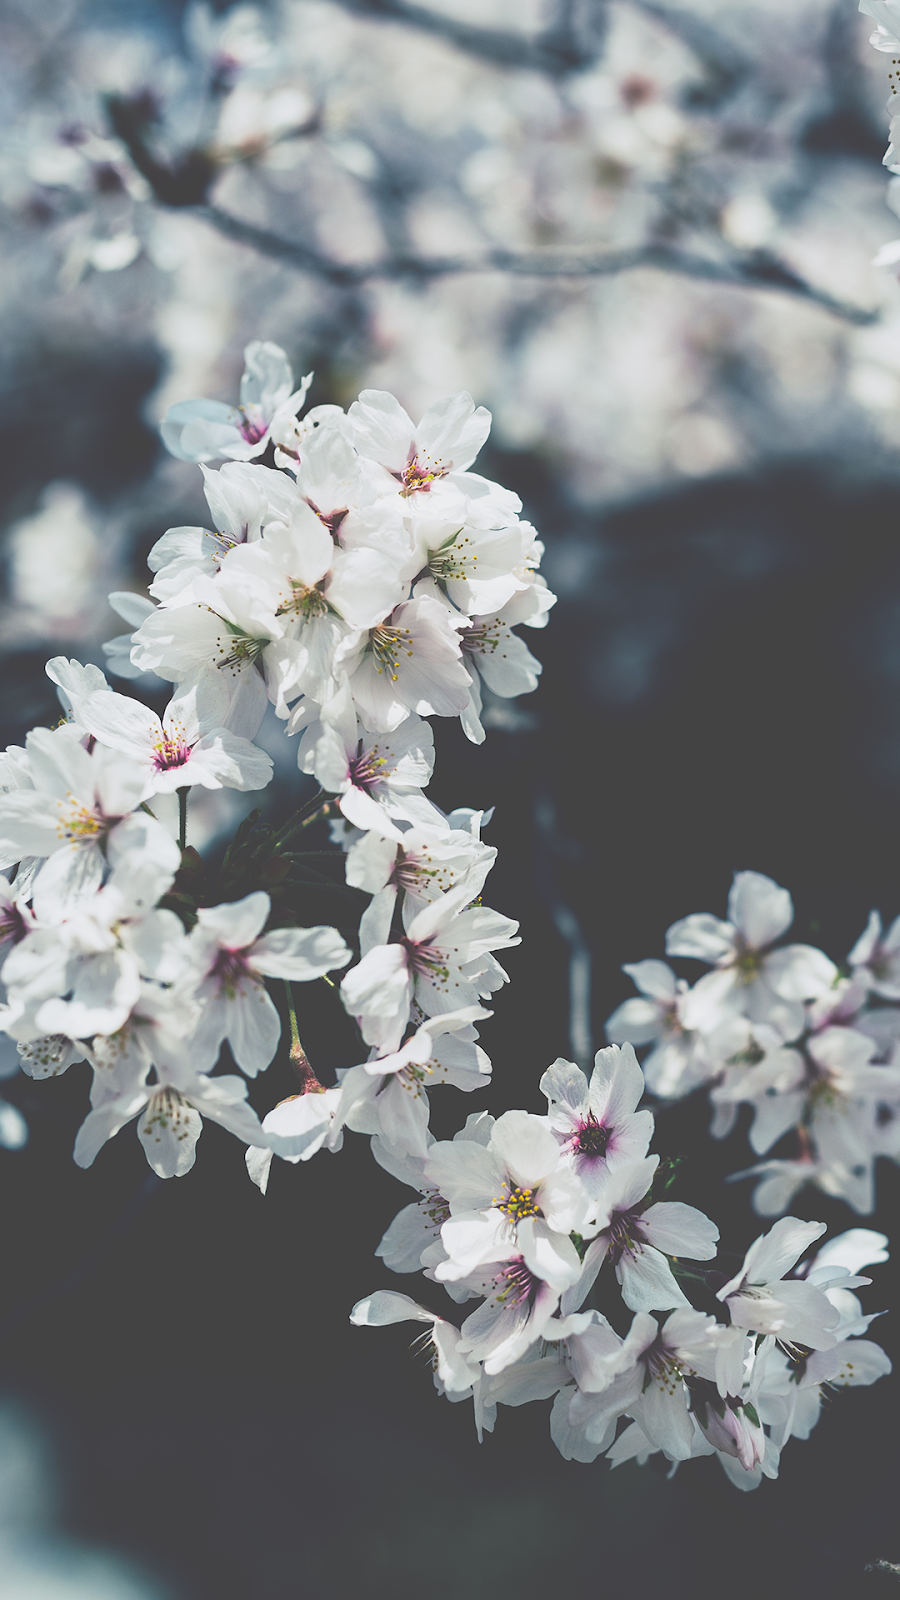 Spring Wallpapers for iPhone - Best Spring Backgrounds [Free Download]